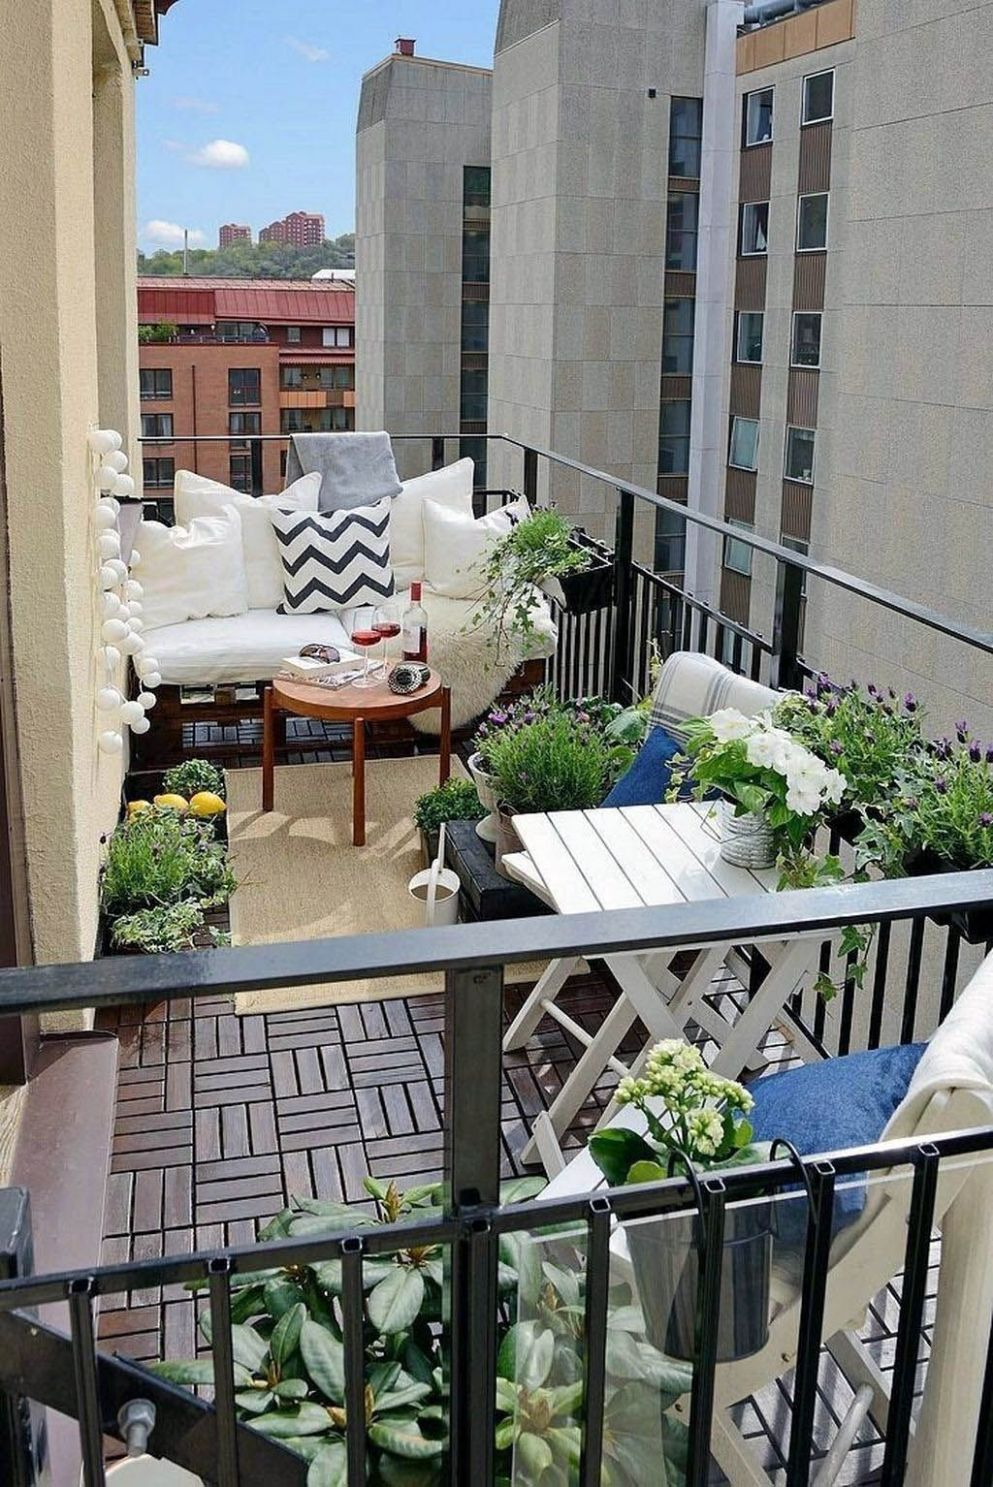 Unique balcony ideas for apartments india exclusive on homesable ..